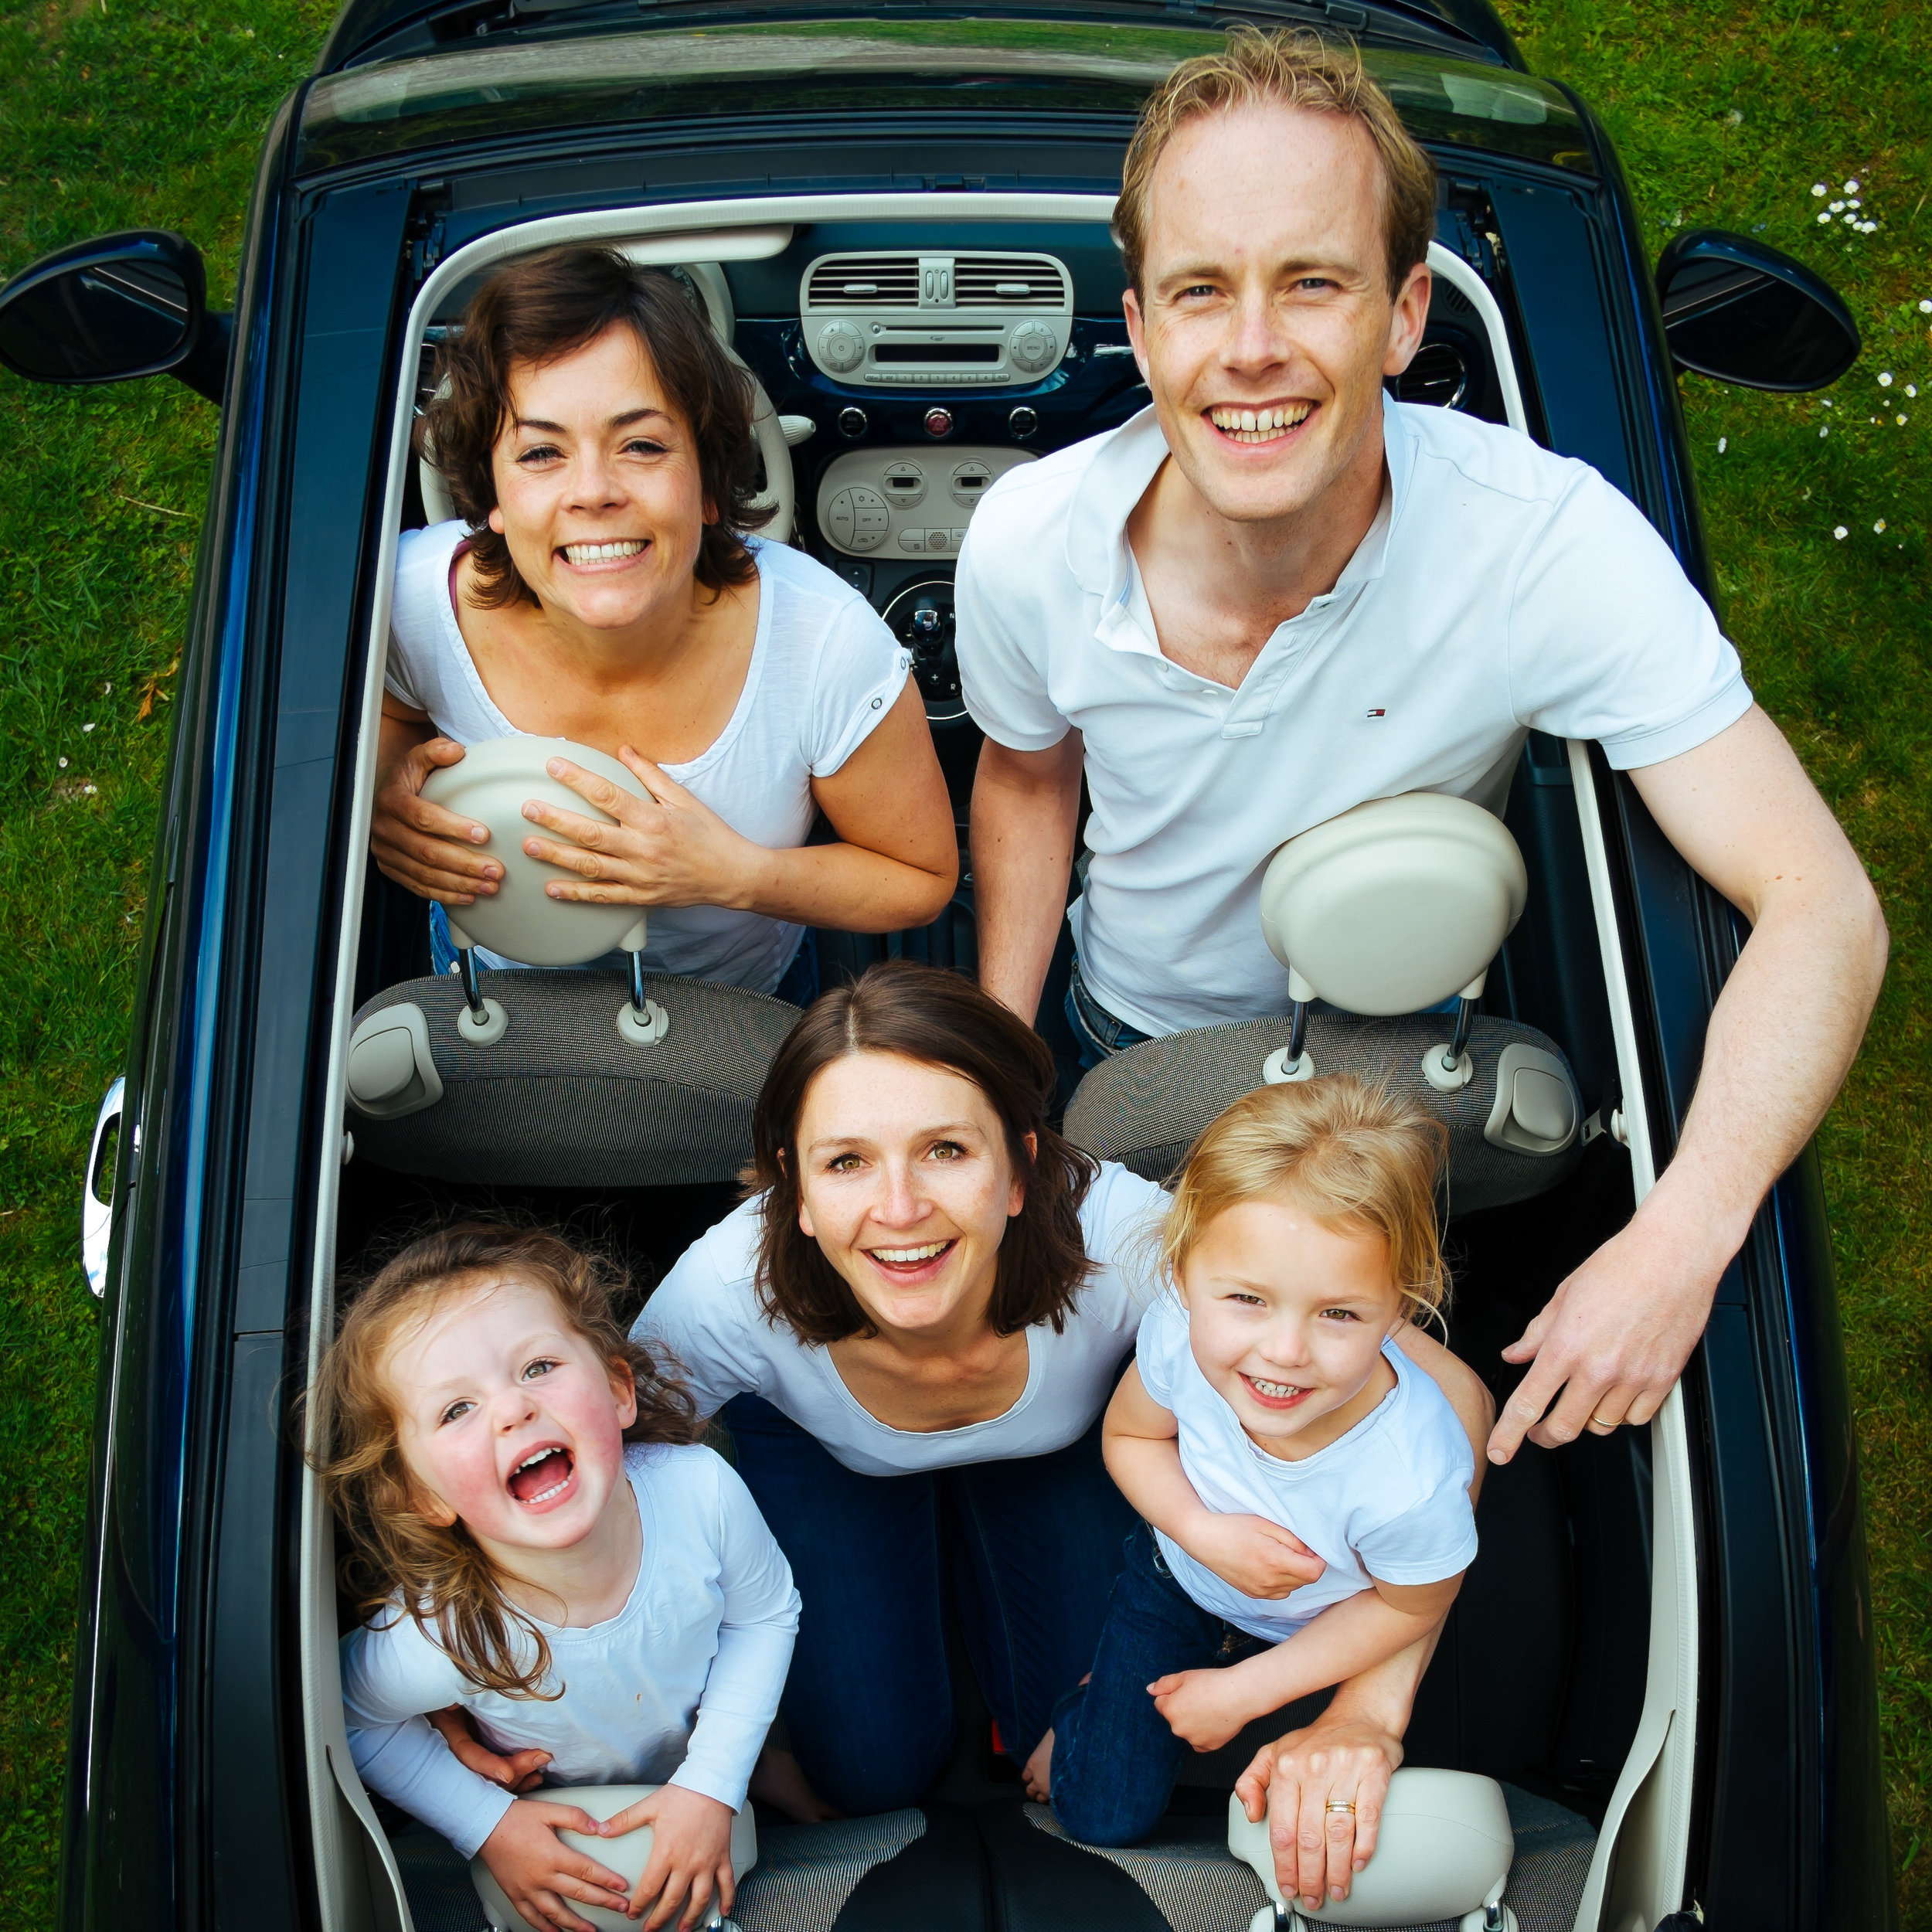 car-children-dad-8509-SQUARE.jpg